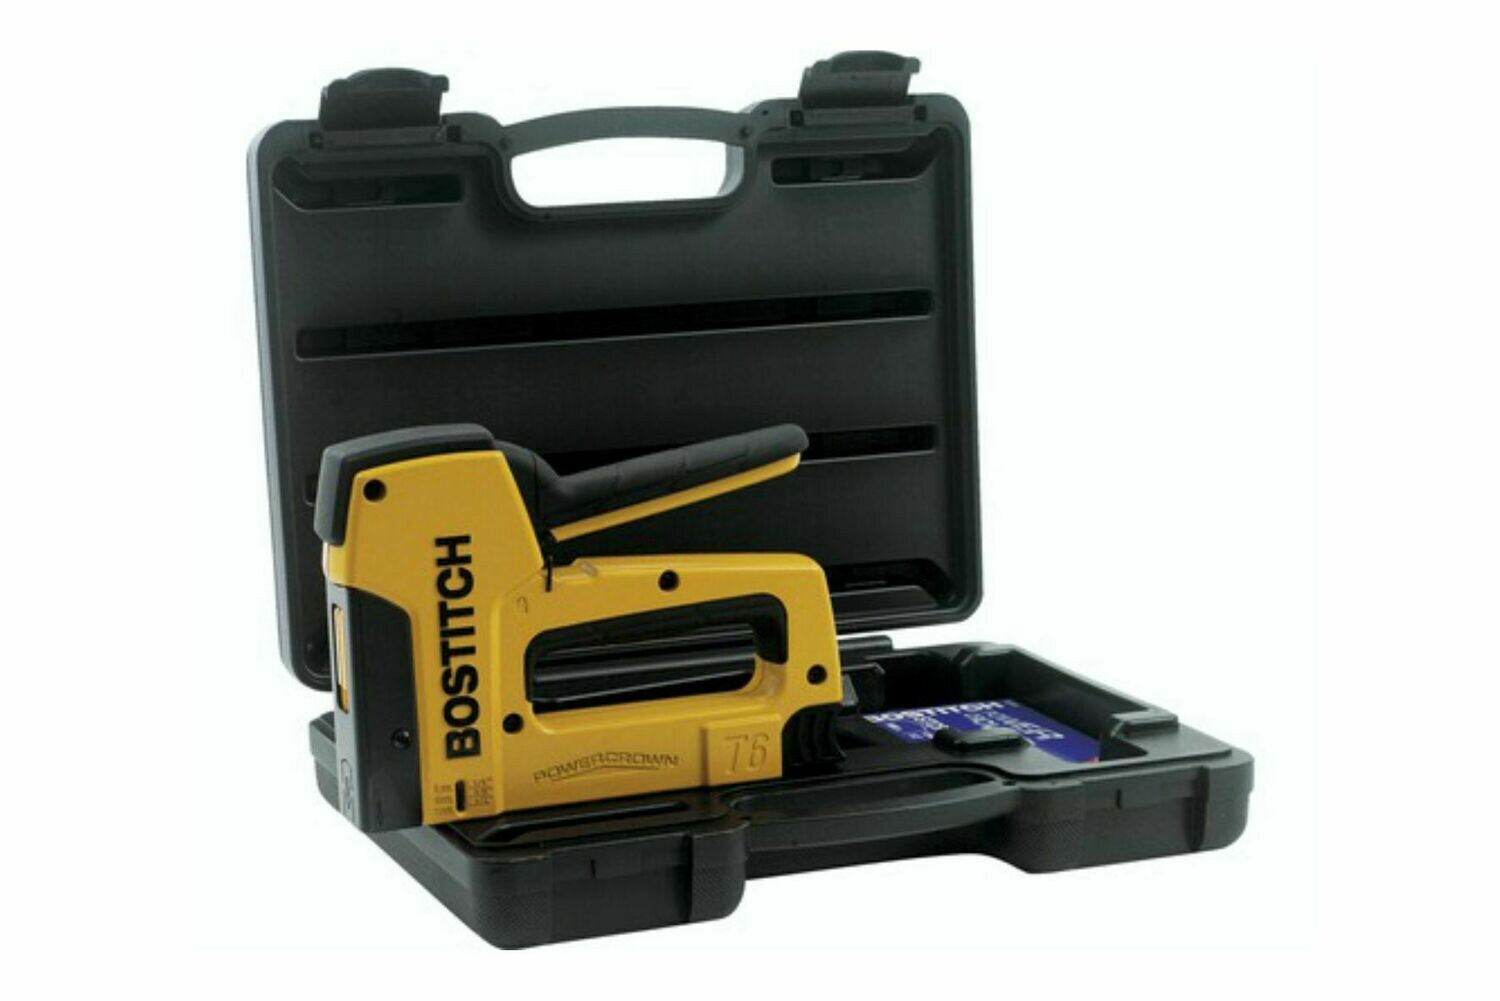 Handtacker Bostitch PC8000/T6 Kit